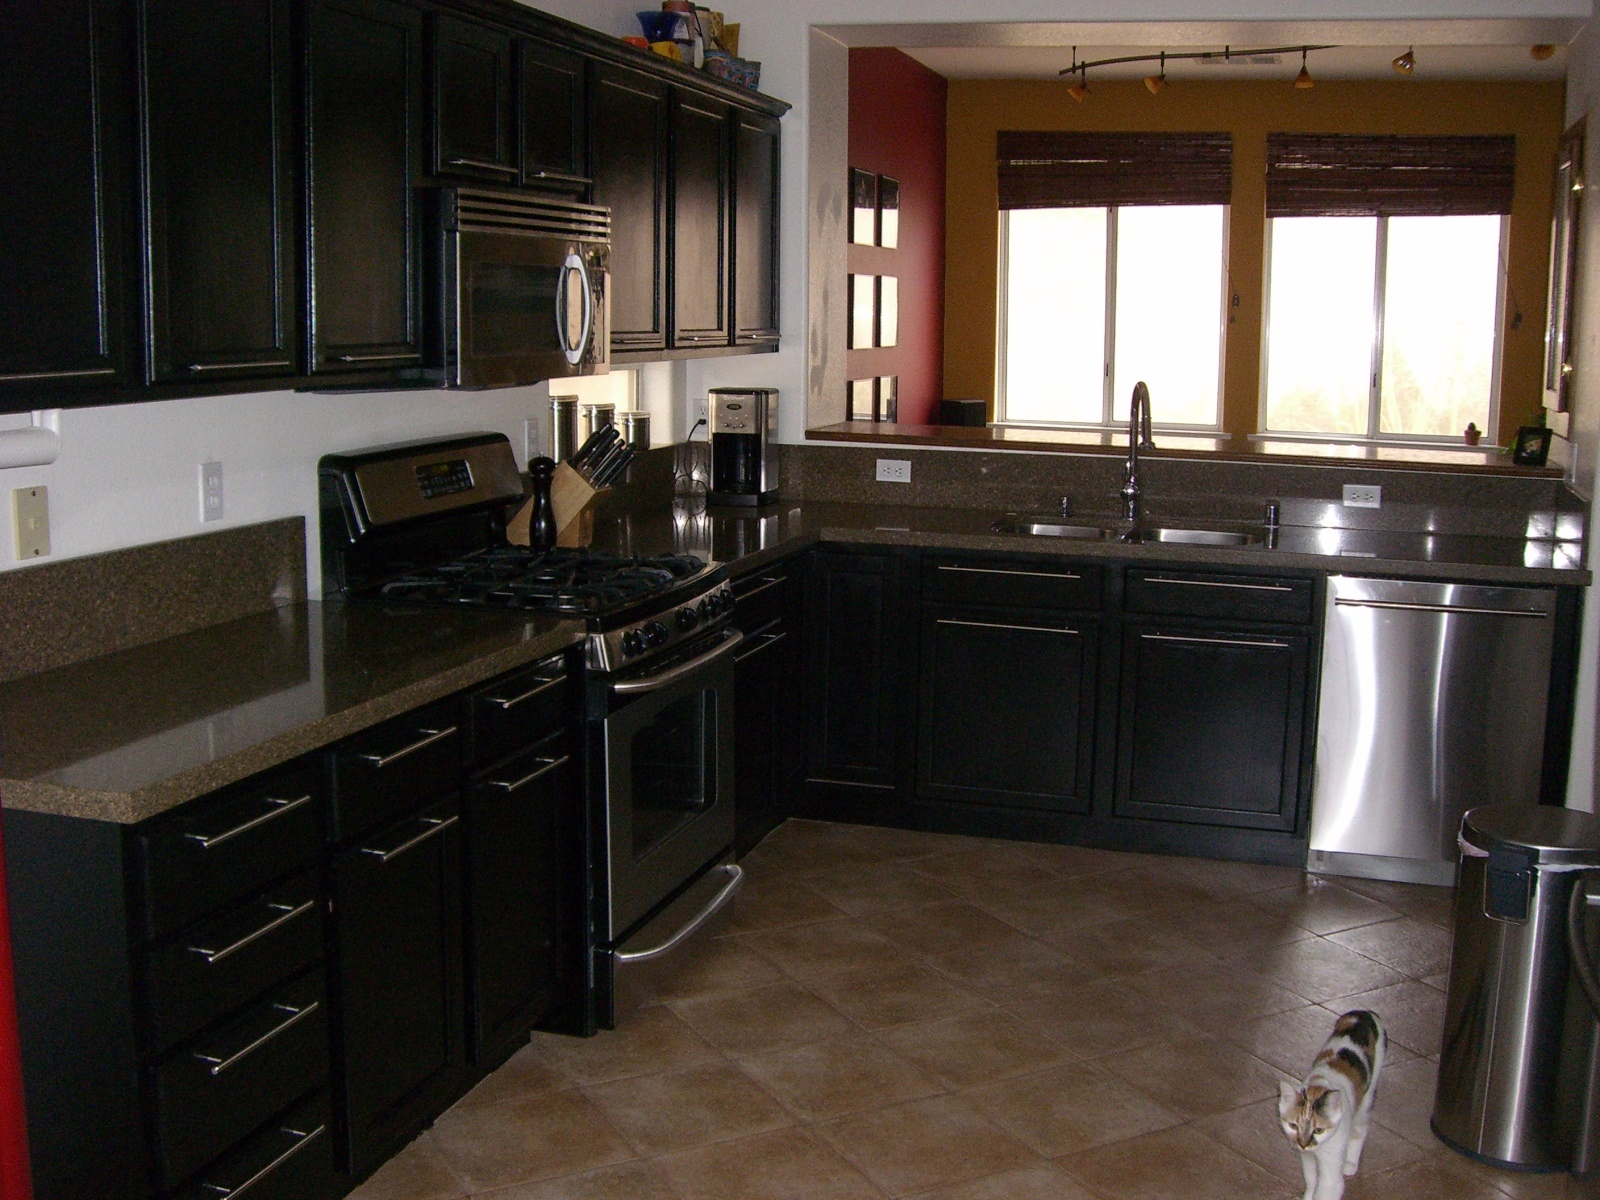 Michael blanchard handyman services small projects that for Kitchen cabinets handles